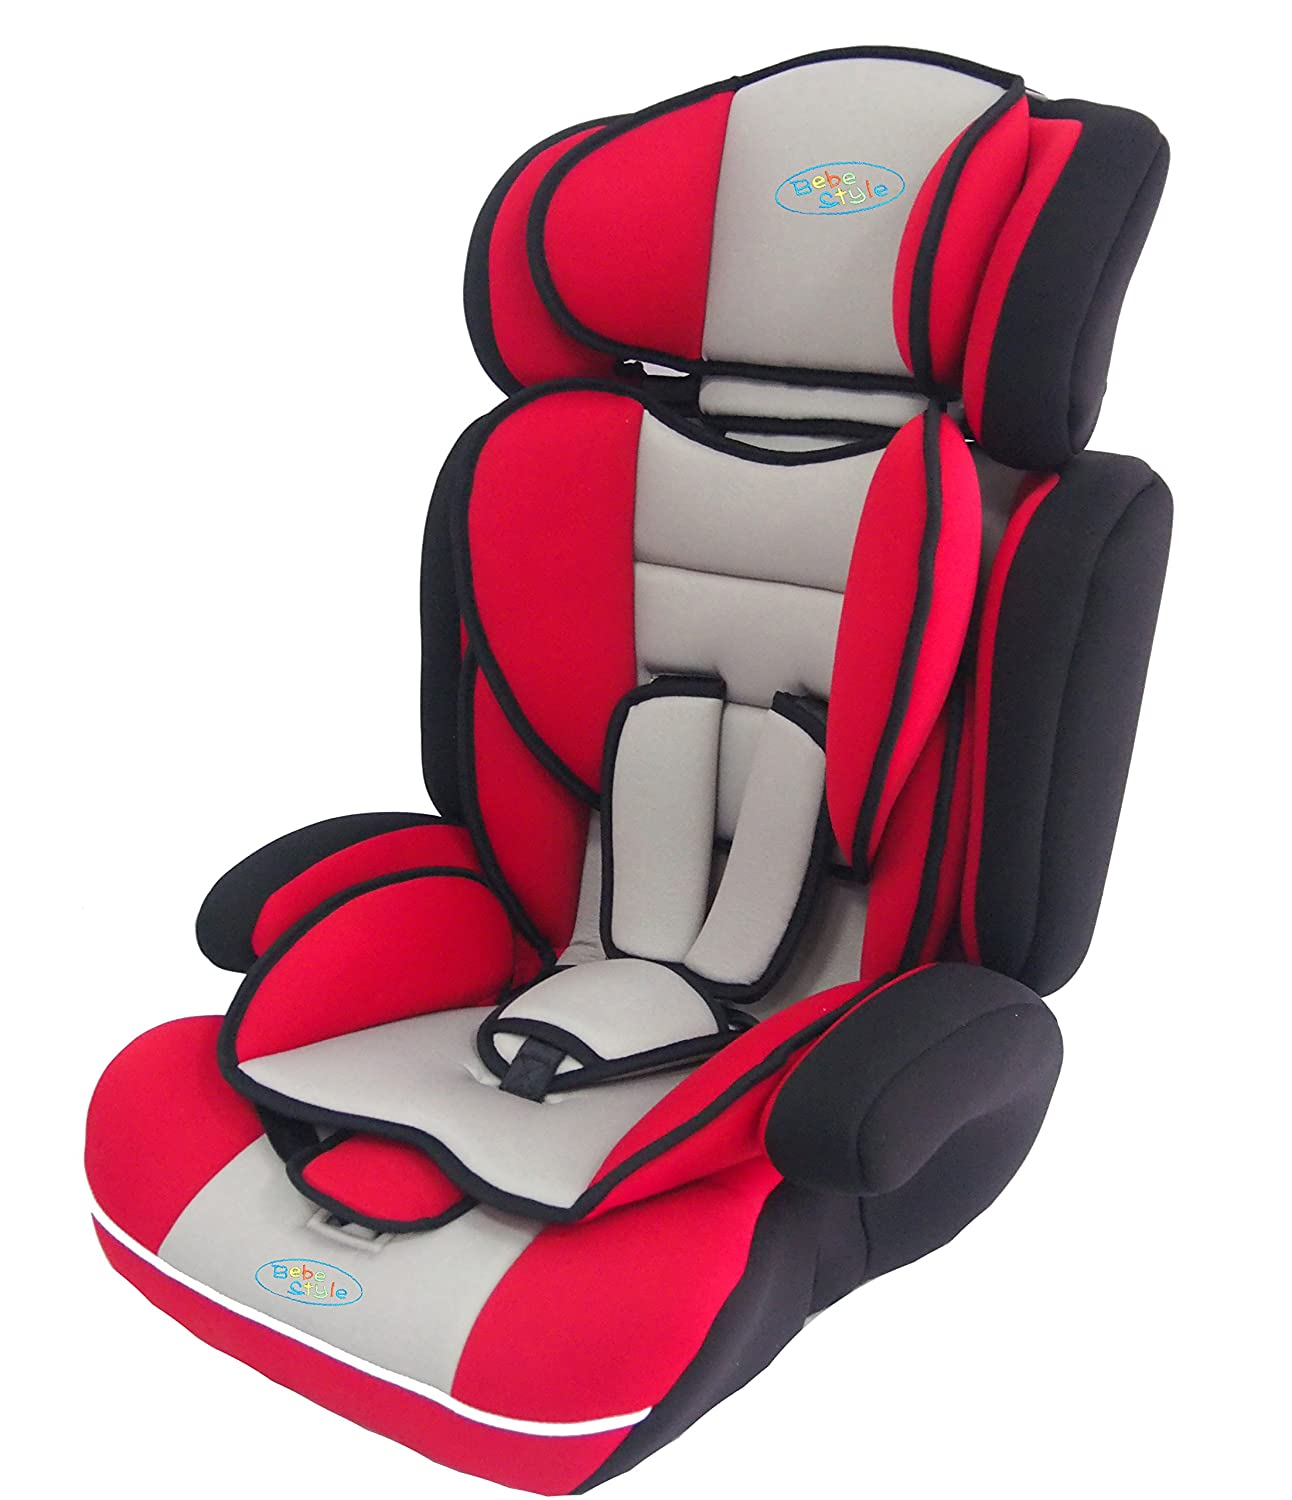 Bebe Style Convertible 1 2 3 Combination Car Seat Red Amazon Co